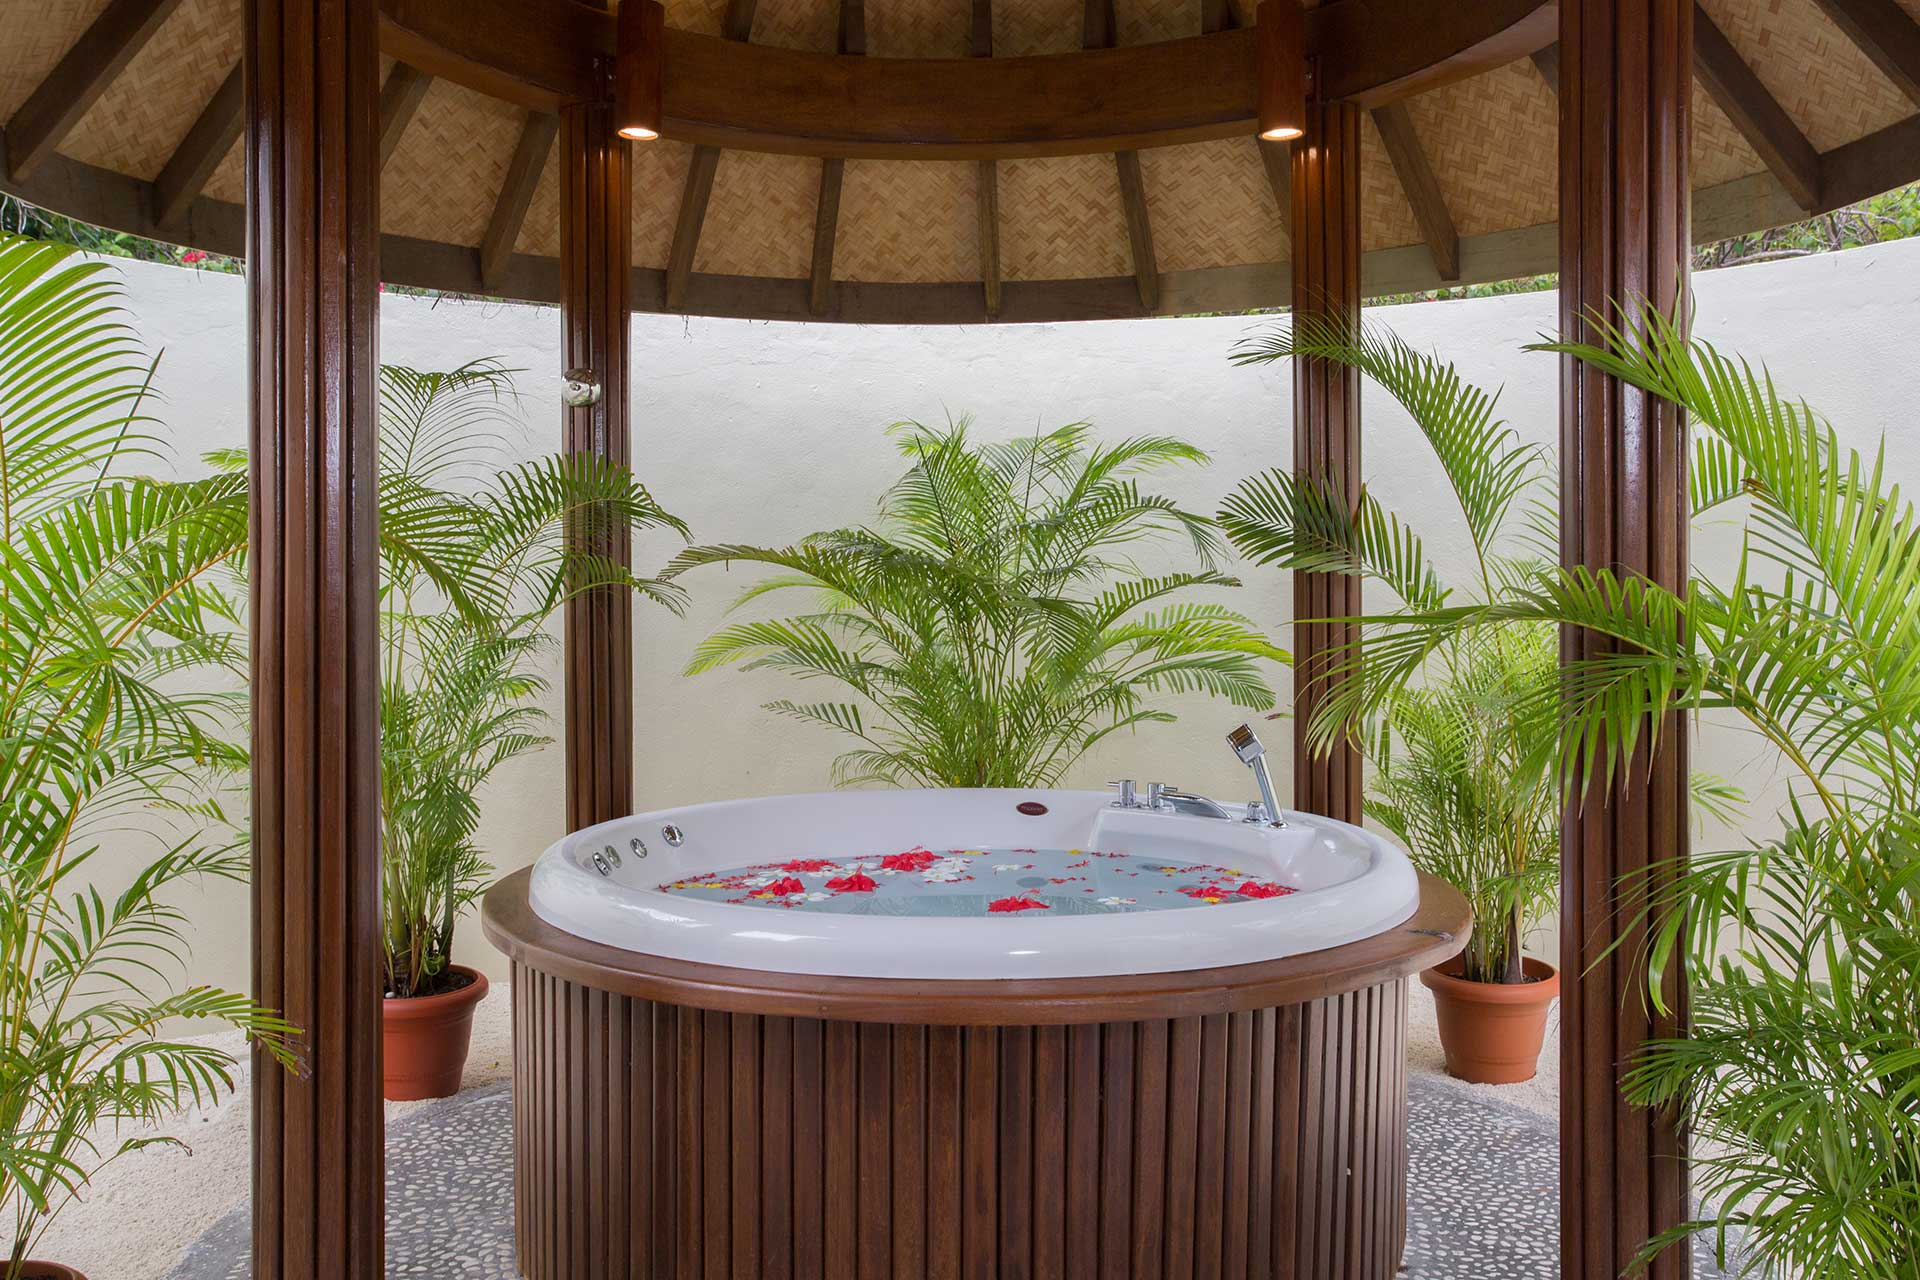 Jacuzzi Pool Villa Bandos Roomcategories Top Maldives Destination Bandos Maldives